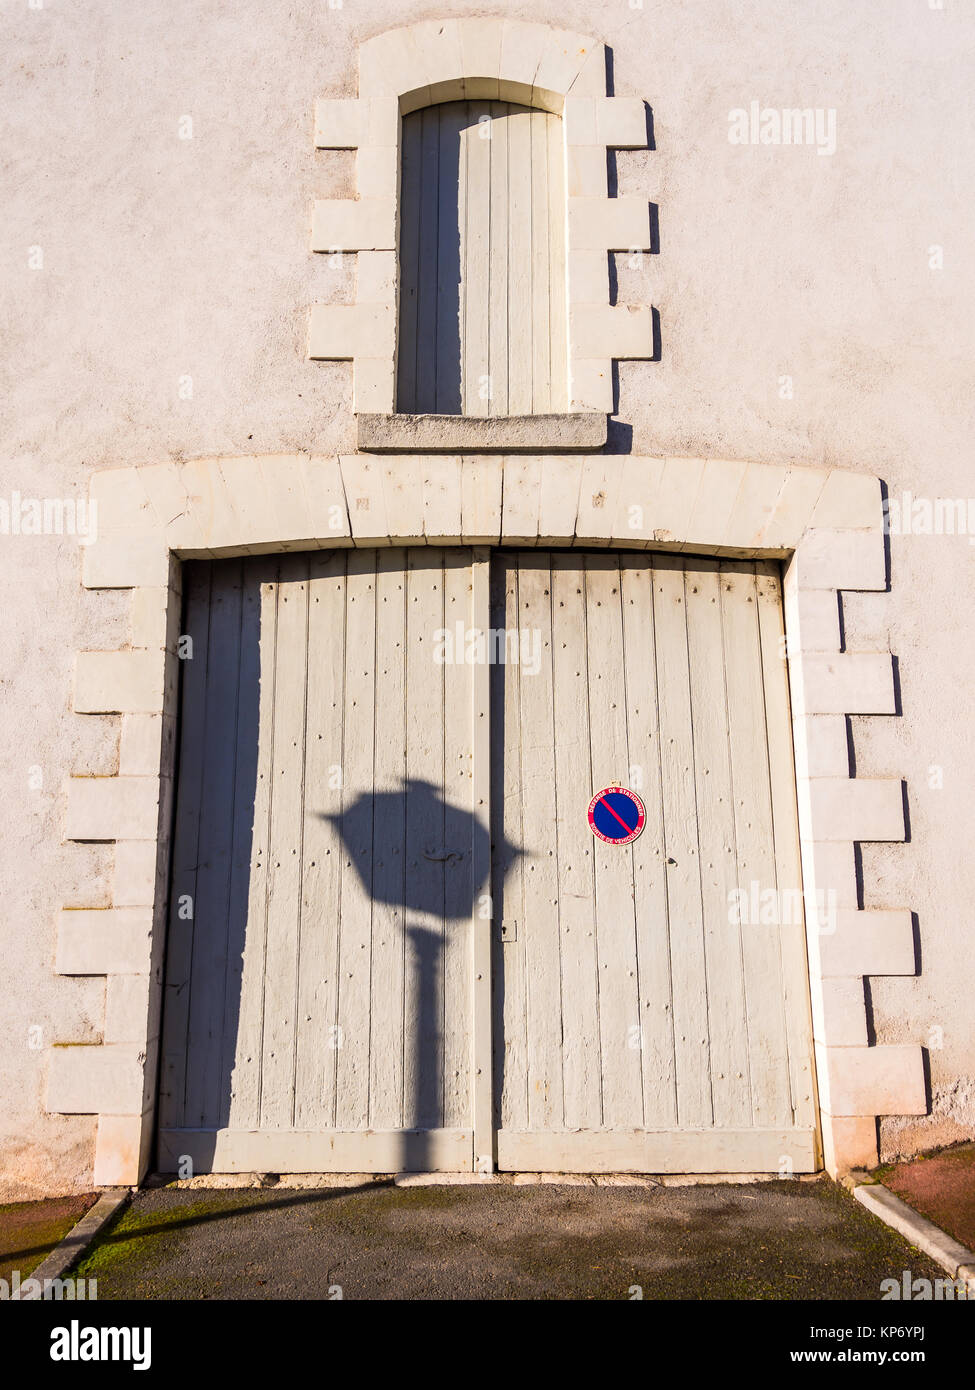 Shadow of street lamp on garage doors - France. - Stock Image